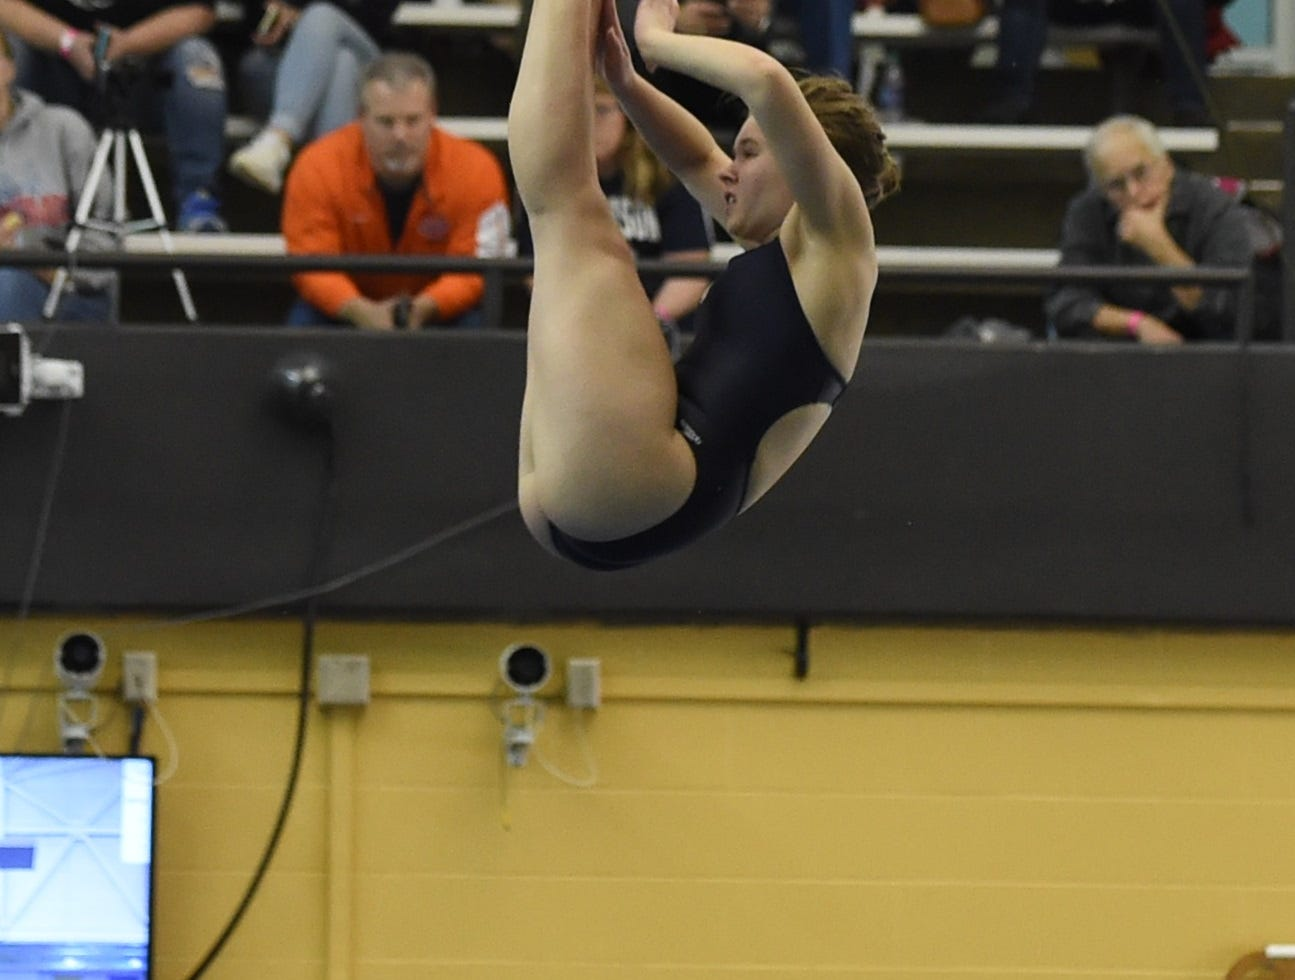 Images from Saturday's North Central Conference Swimming and Diving Championships at Purdue. Alexa Buckley.